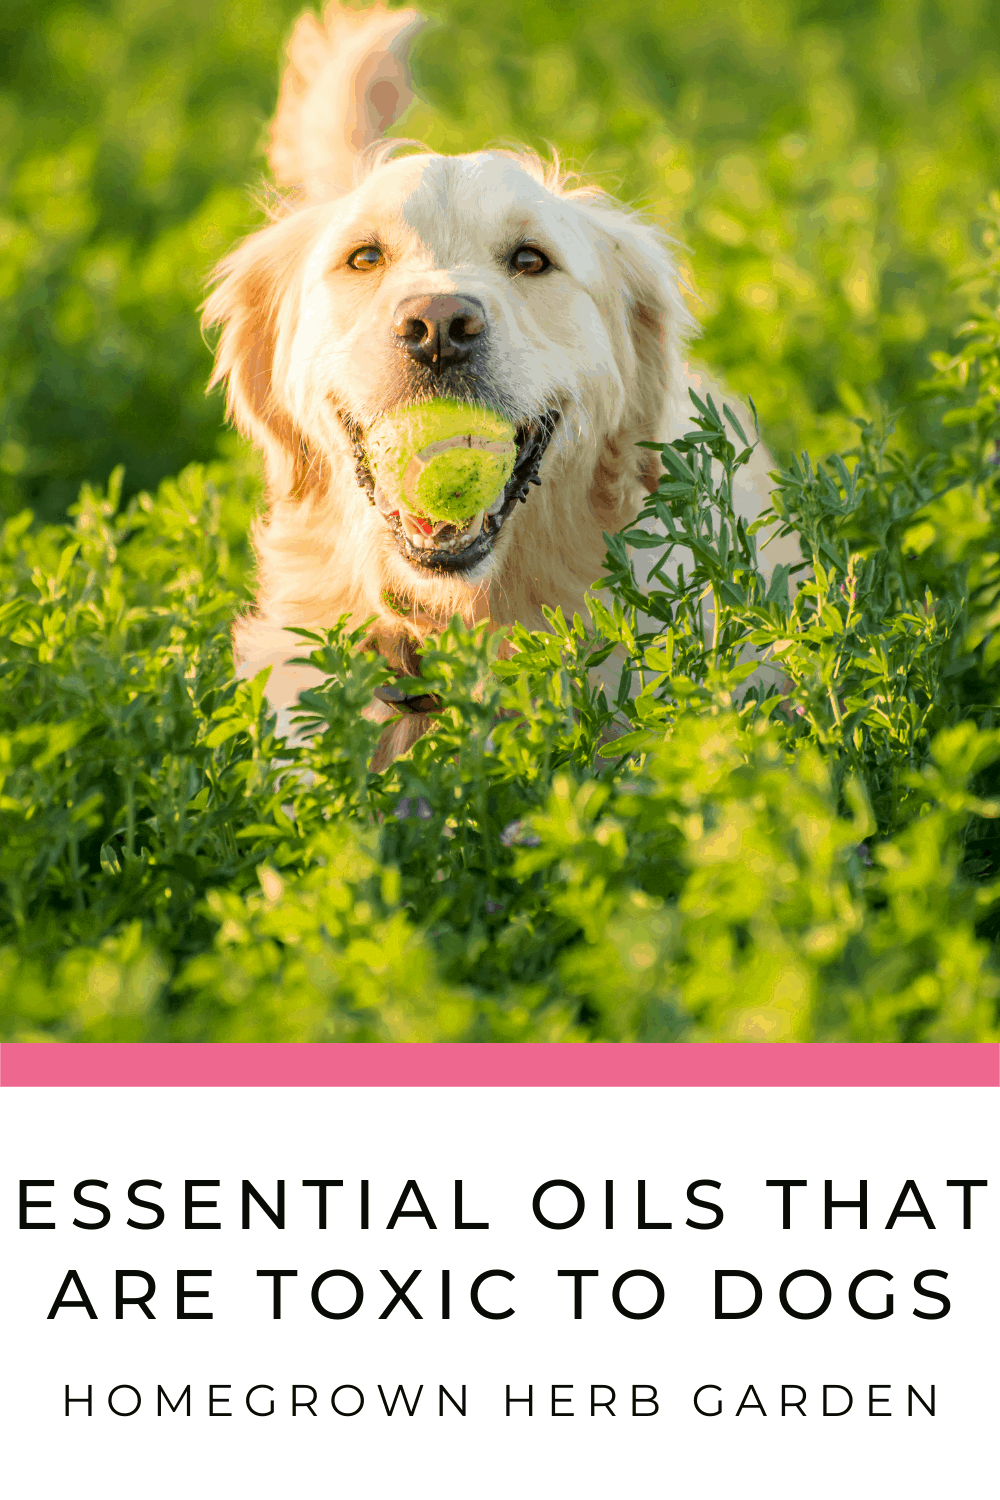 essential oils that are poisonous to dogs